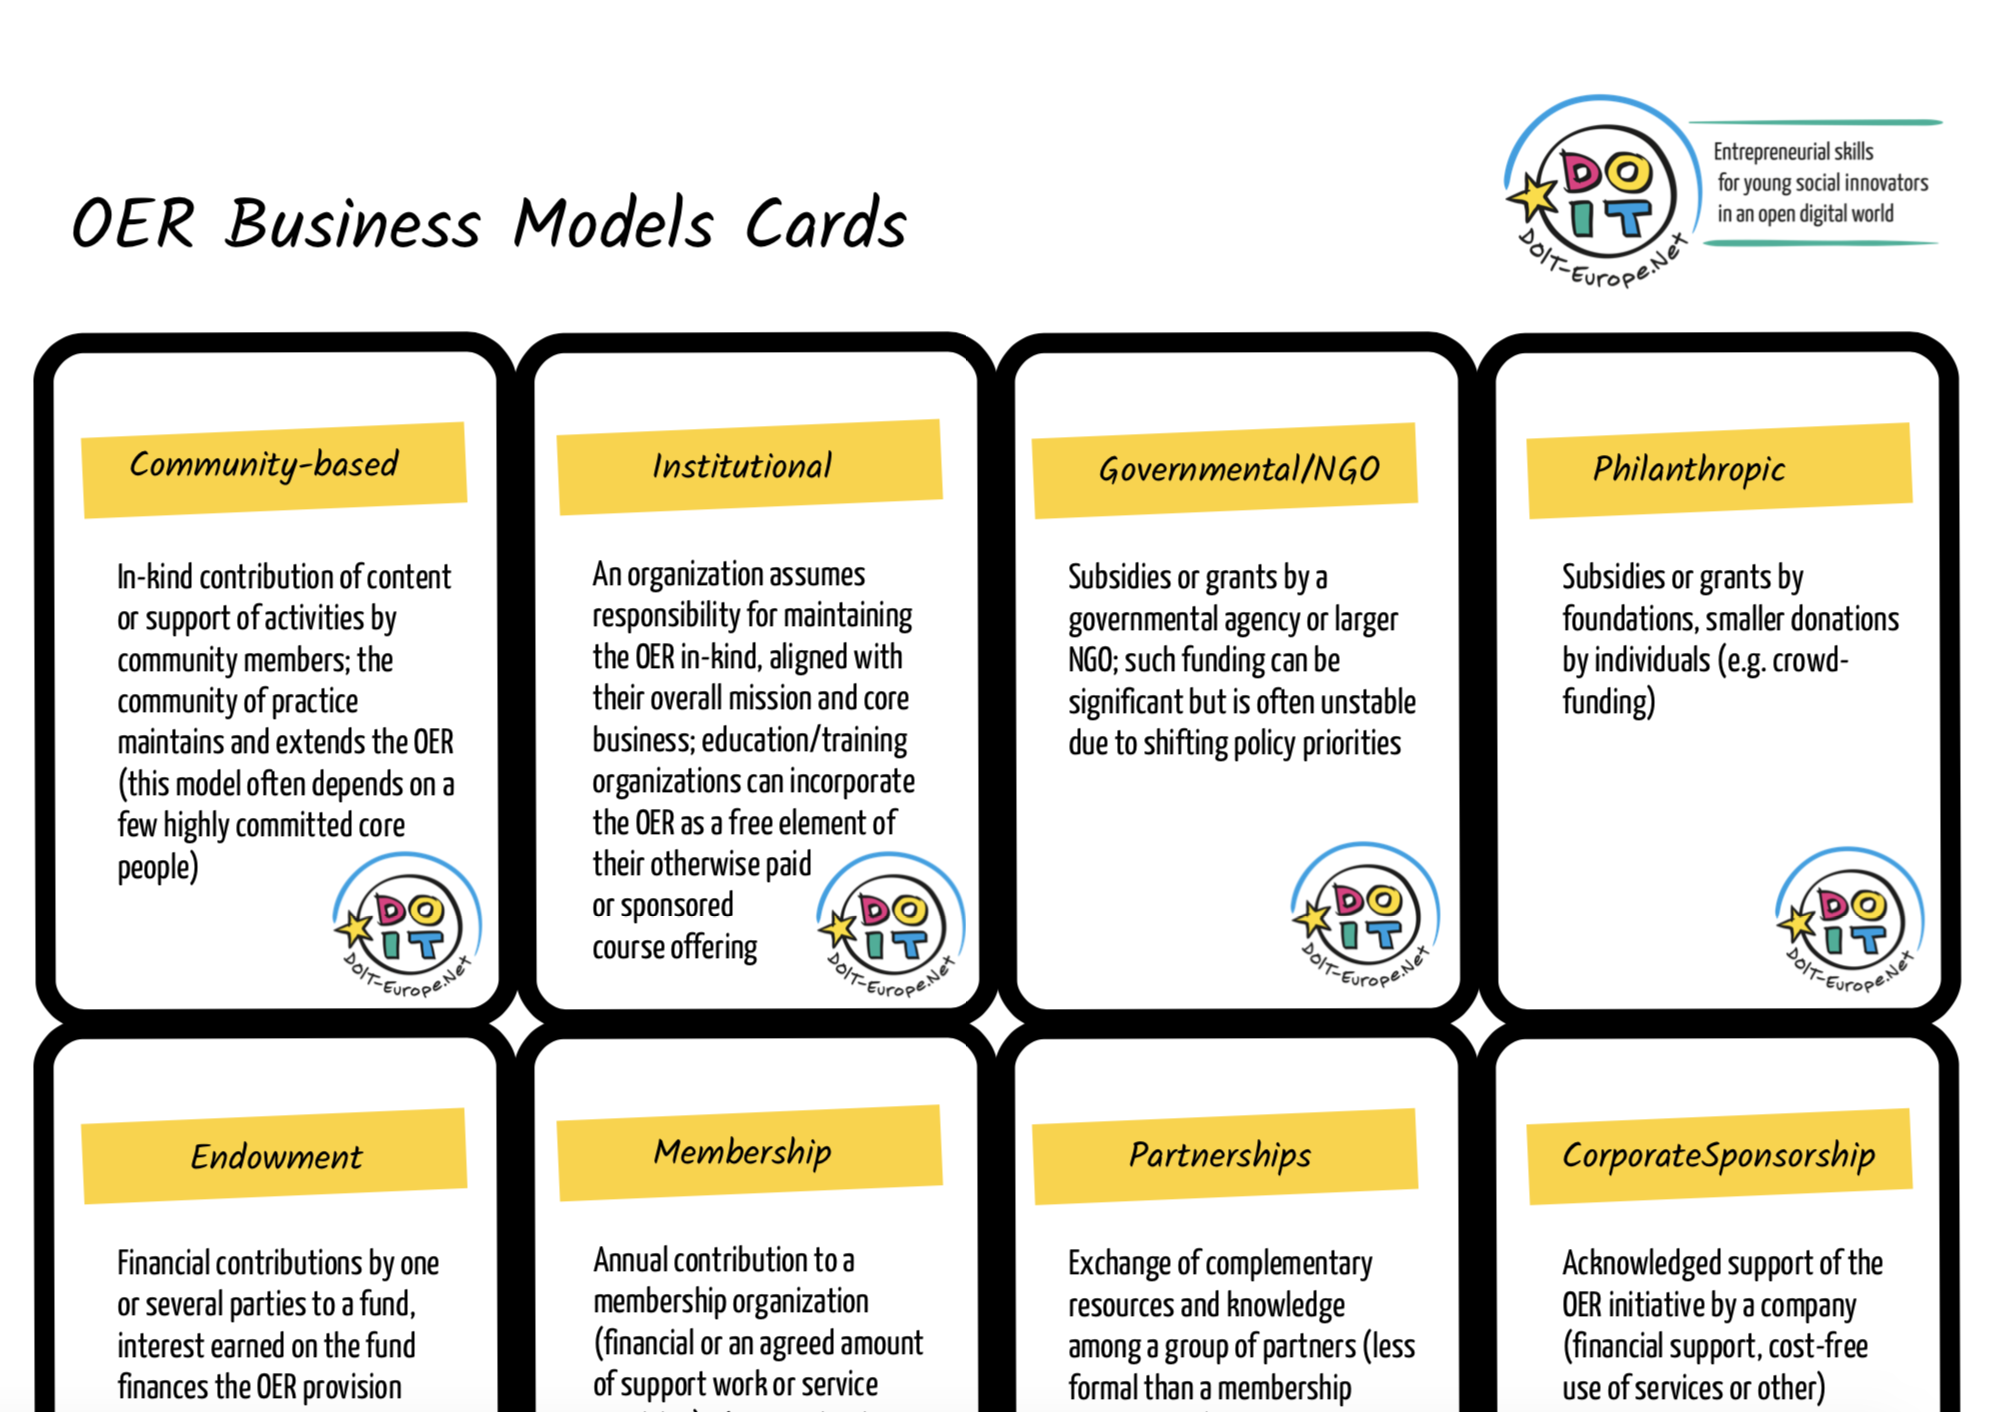 image shows some of the OER business models cards developed by DOIT